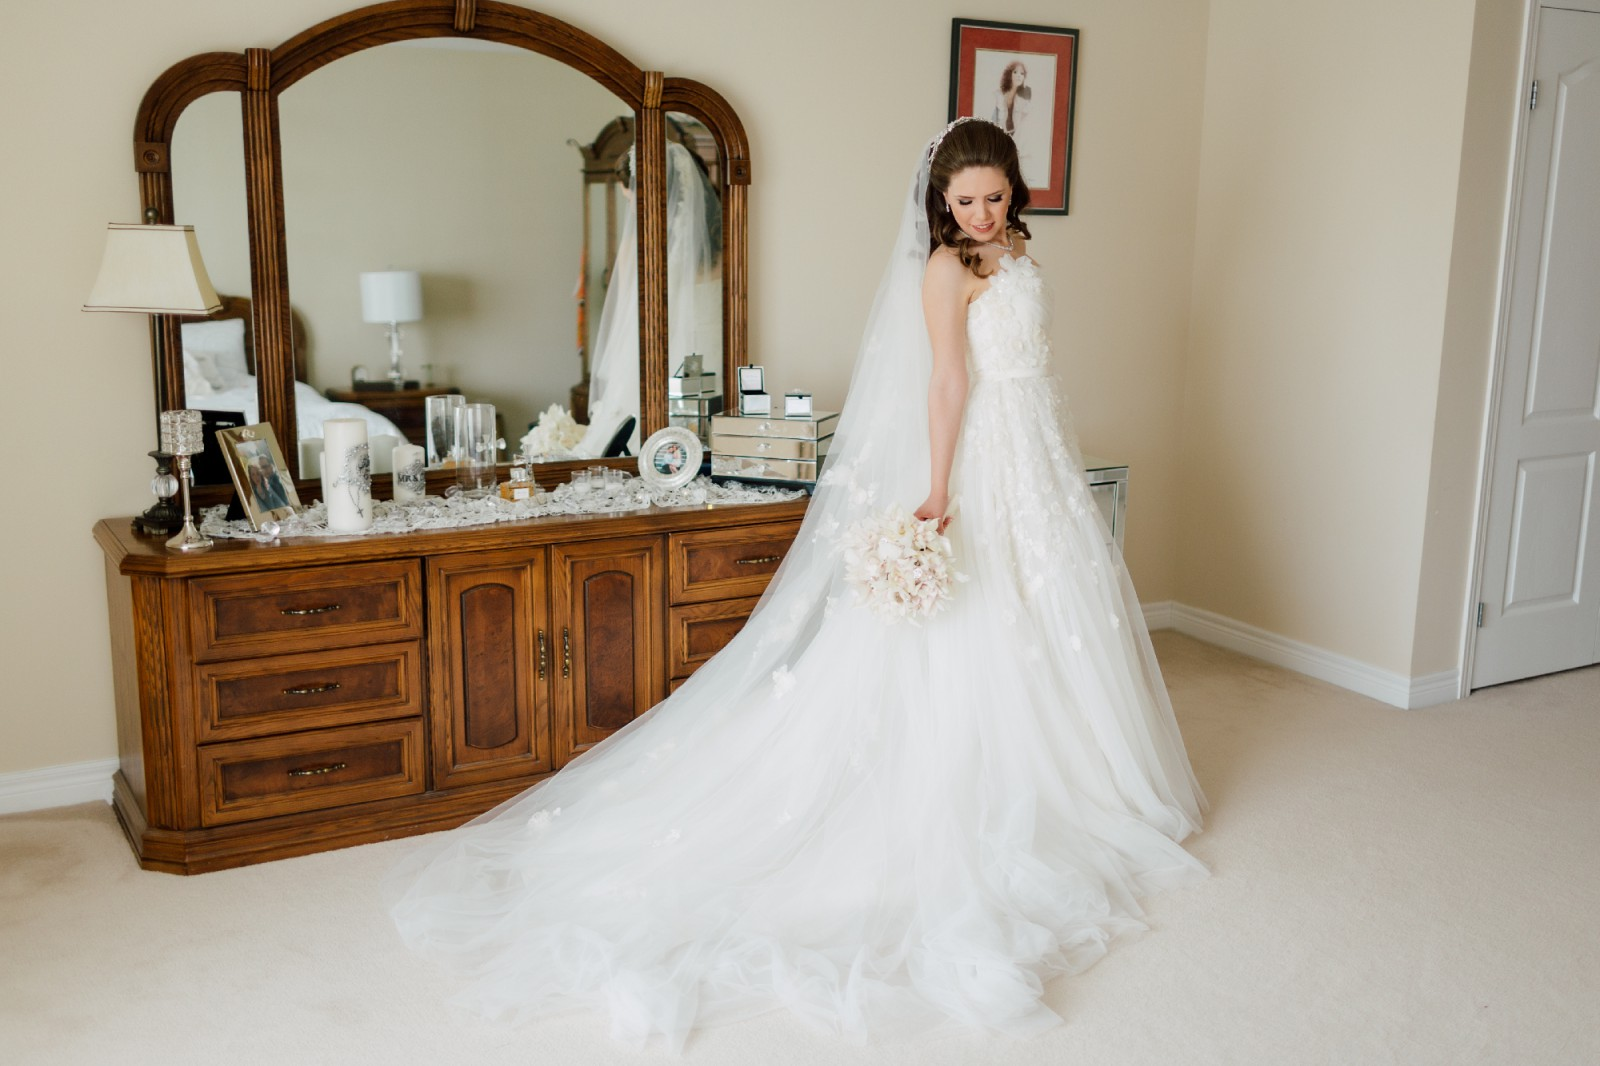 Elie Saab Second Hand Wedding Dress On Sale 71% Off